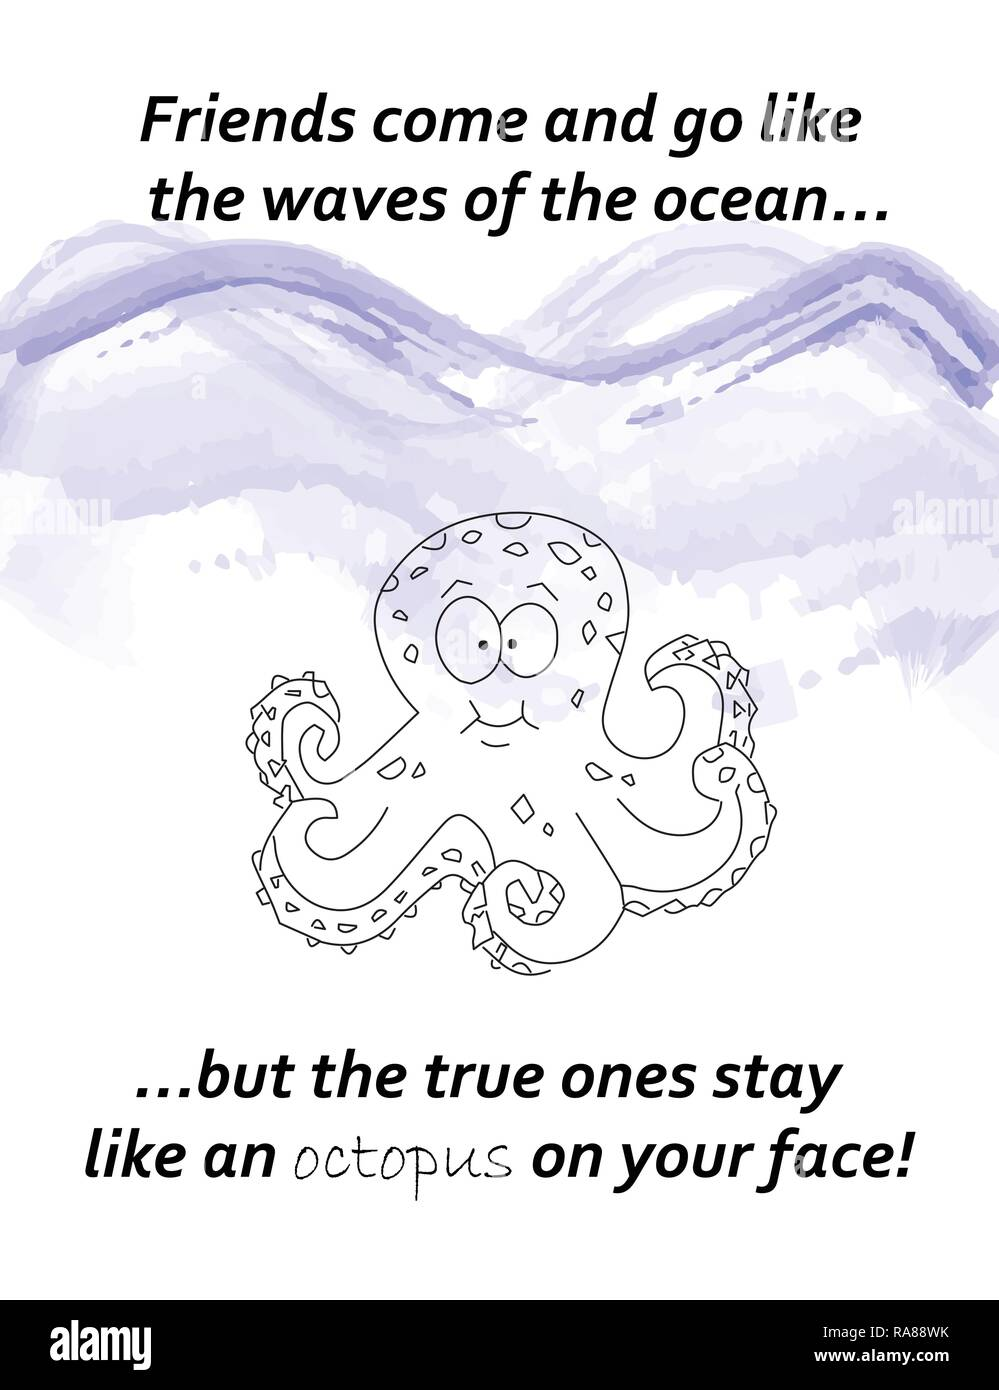 friends come and go like the waves - friend quote - octopus ...